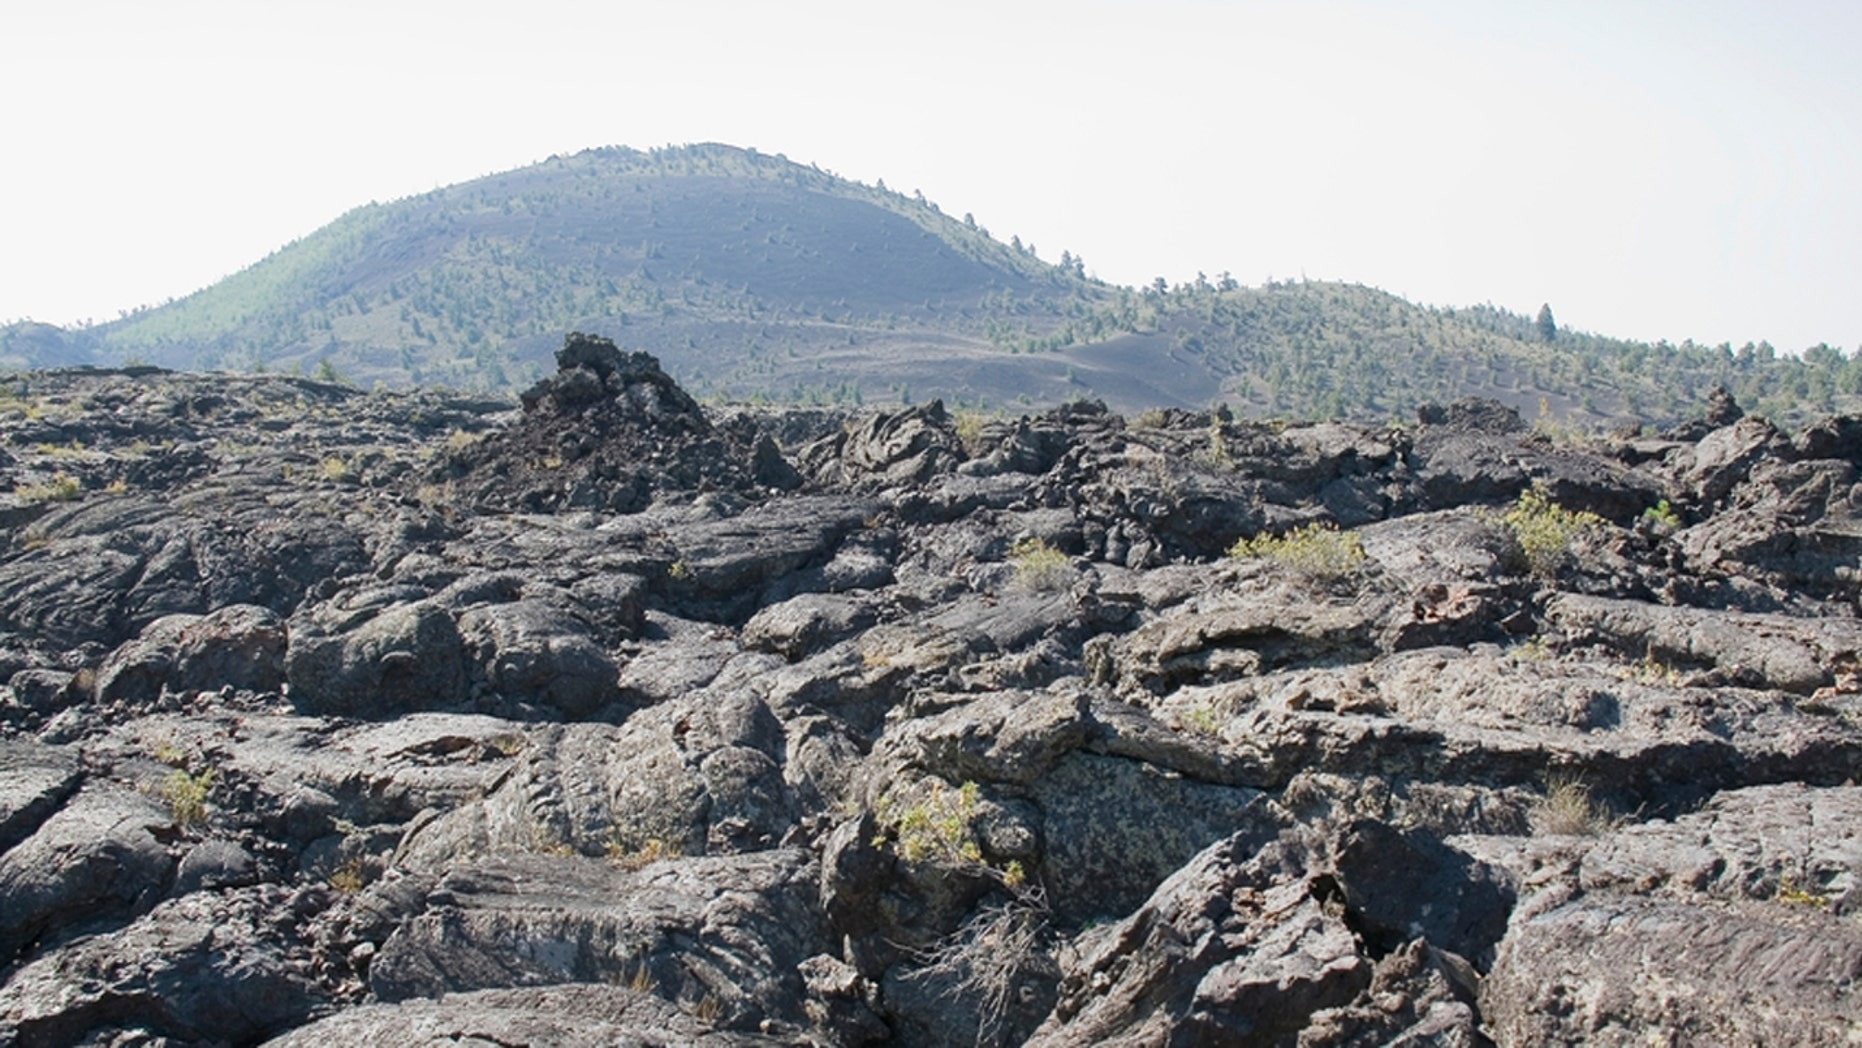 The vast ocean of lava flows through scattered islands of cinder cones and sagebrush at Idaho's space-like Craters of the Moon National Park.